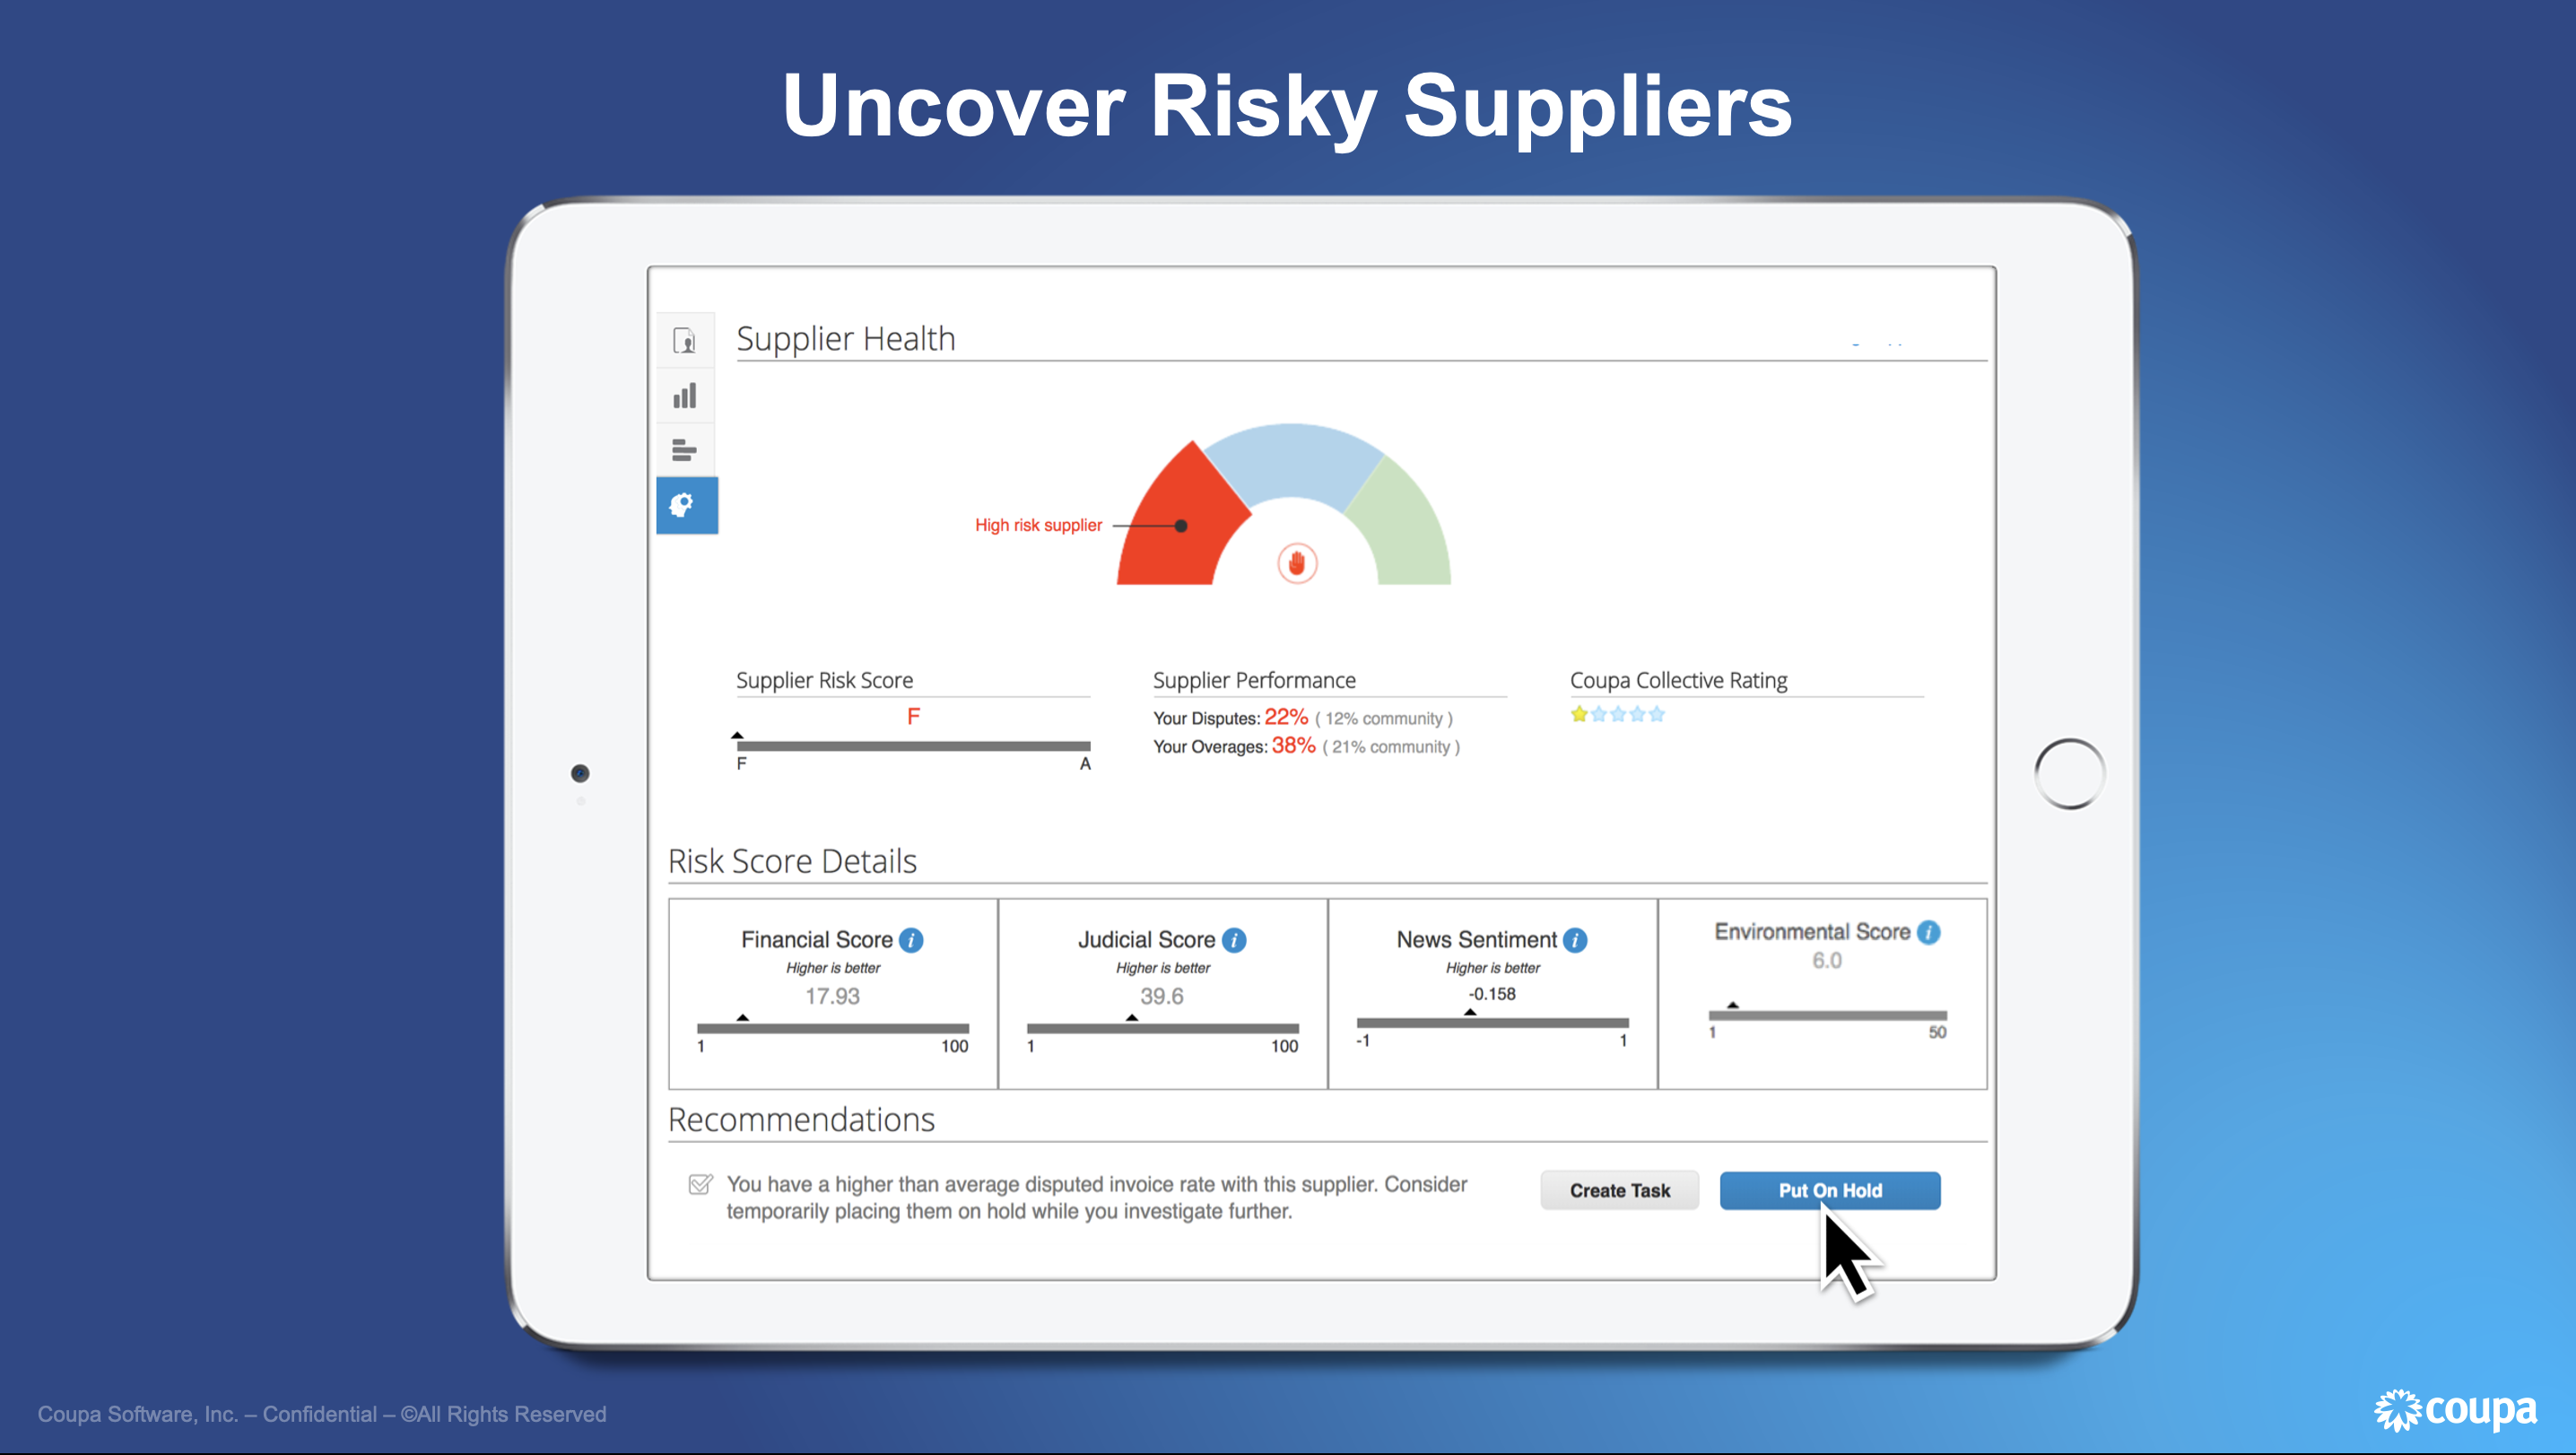 Uncover Risky Suppliers